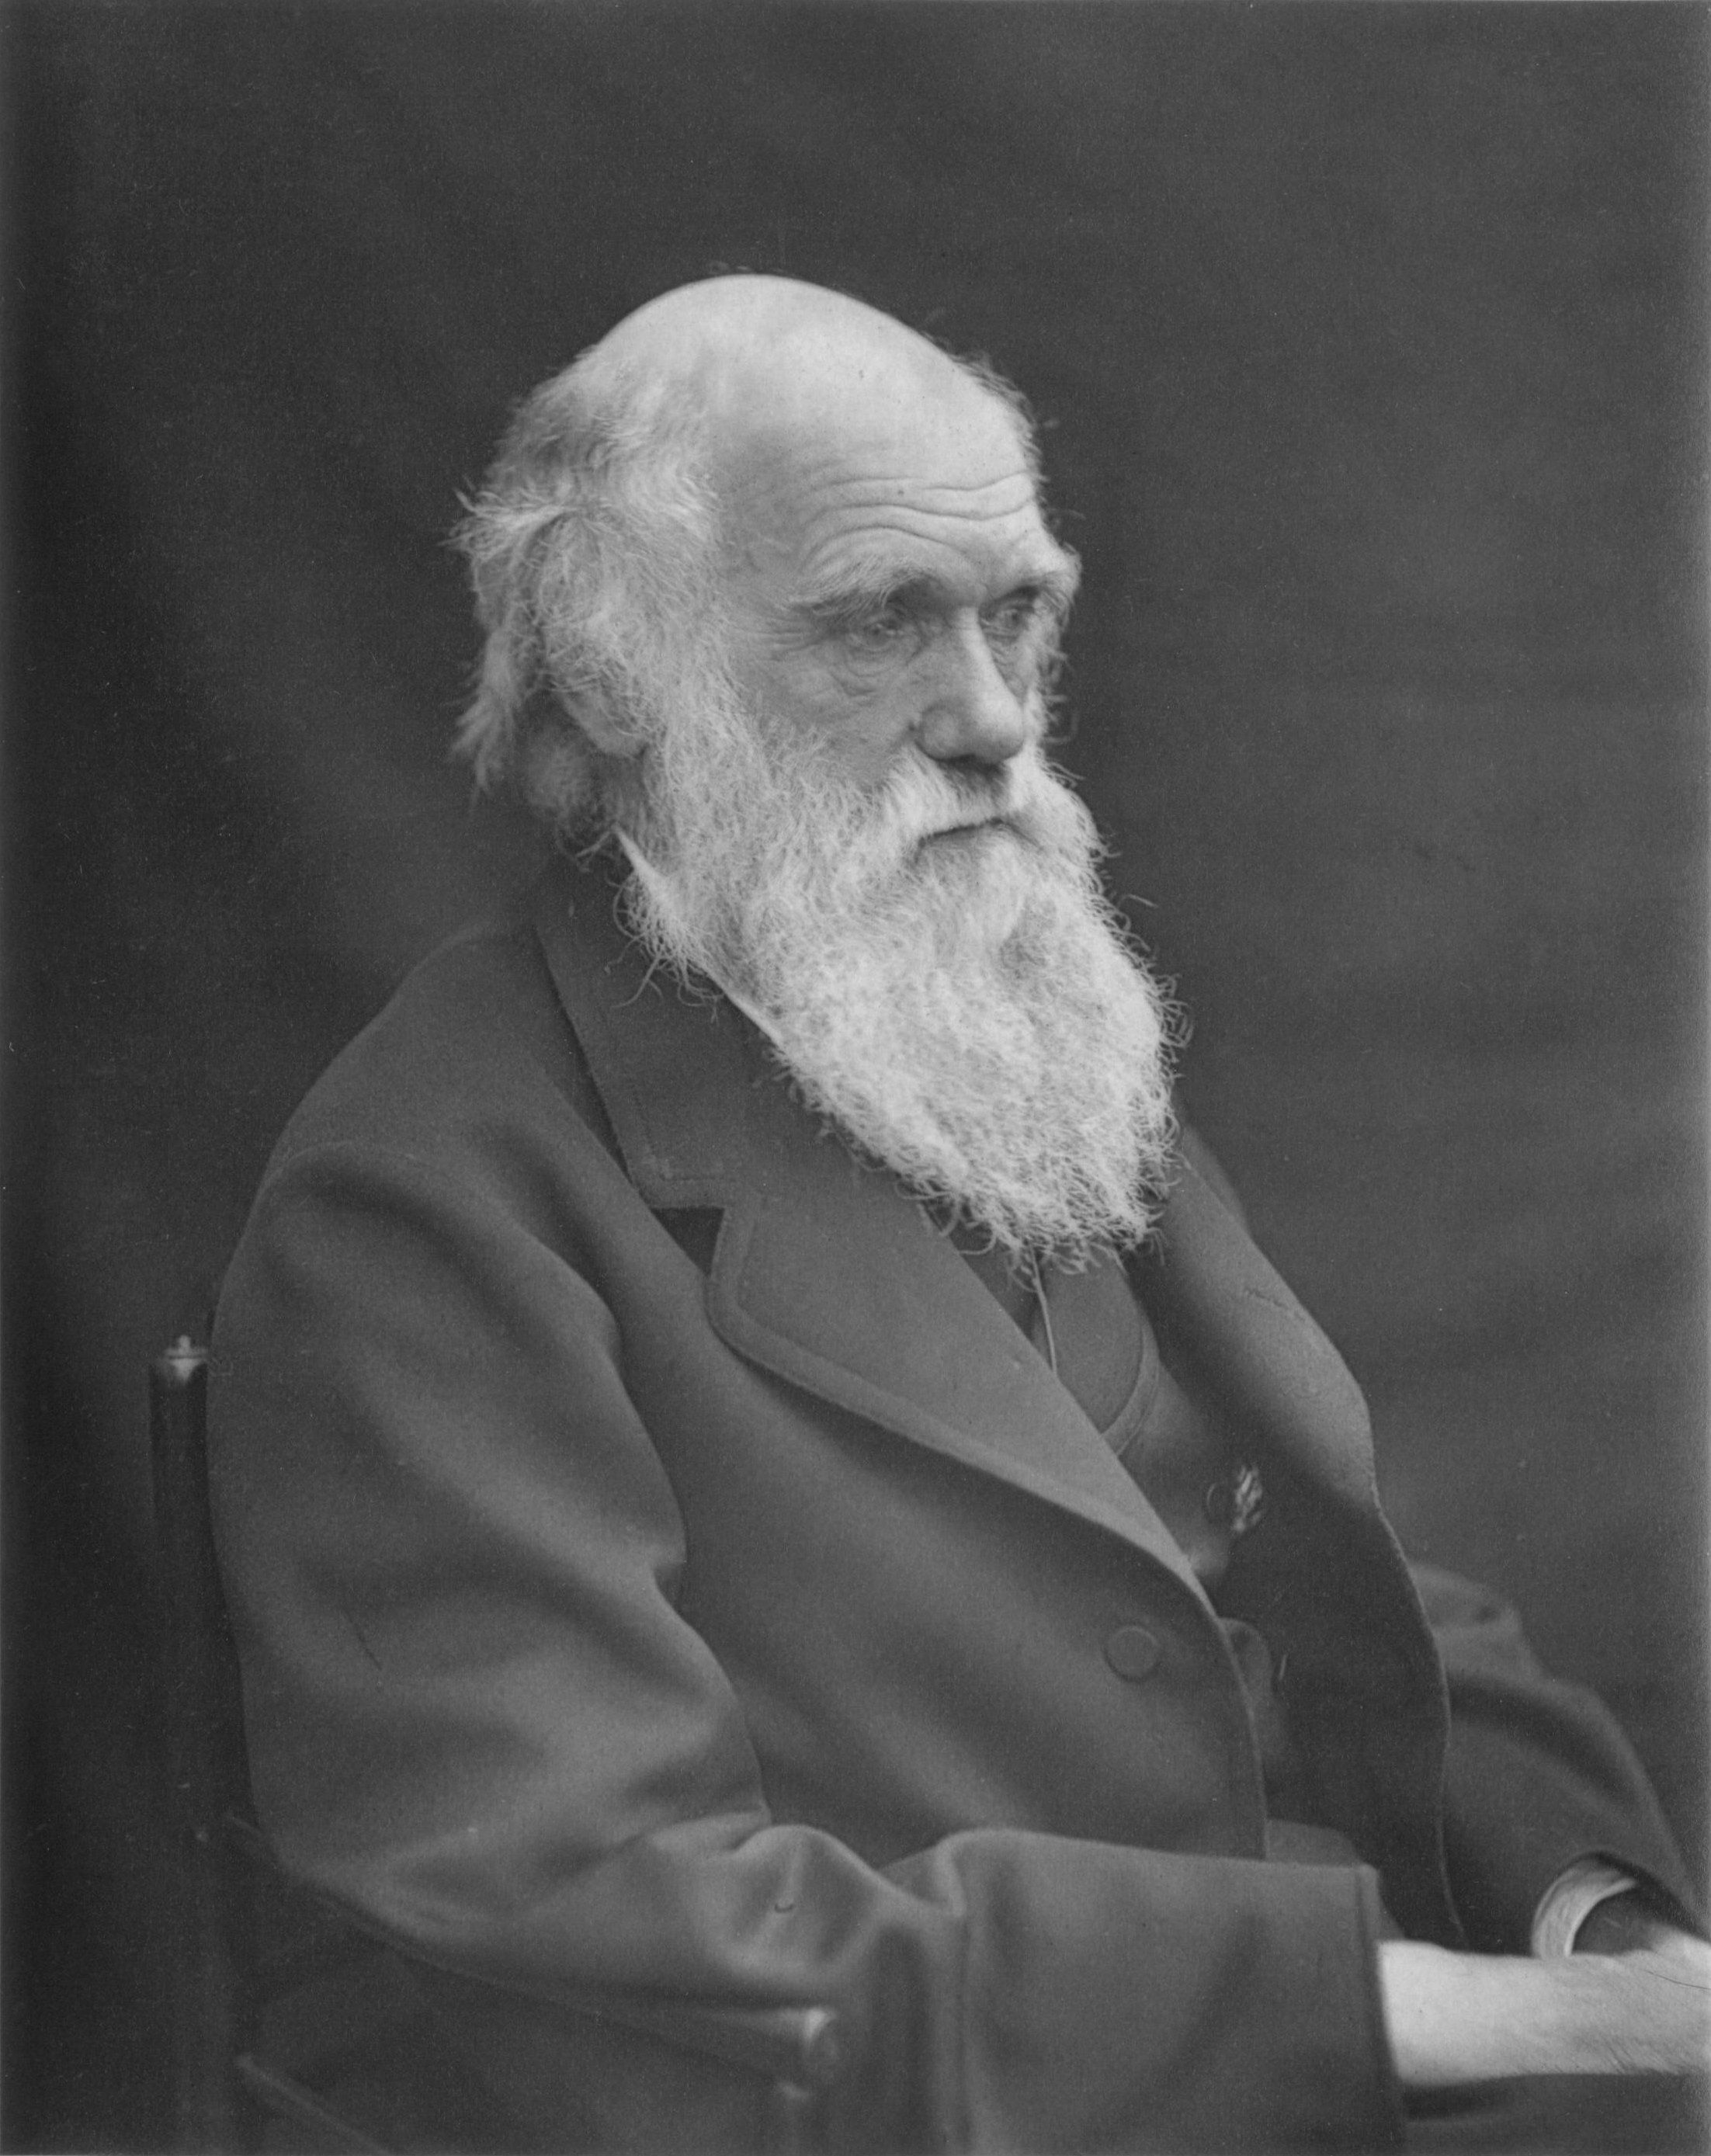 charles darwin s finches and the theory of evolution charles darwin circa 1874